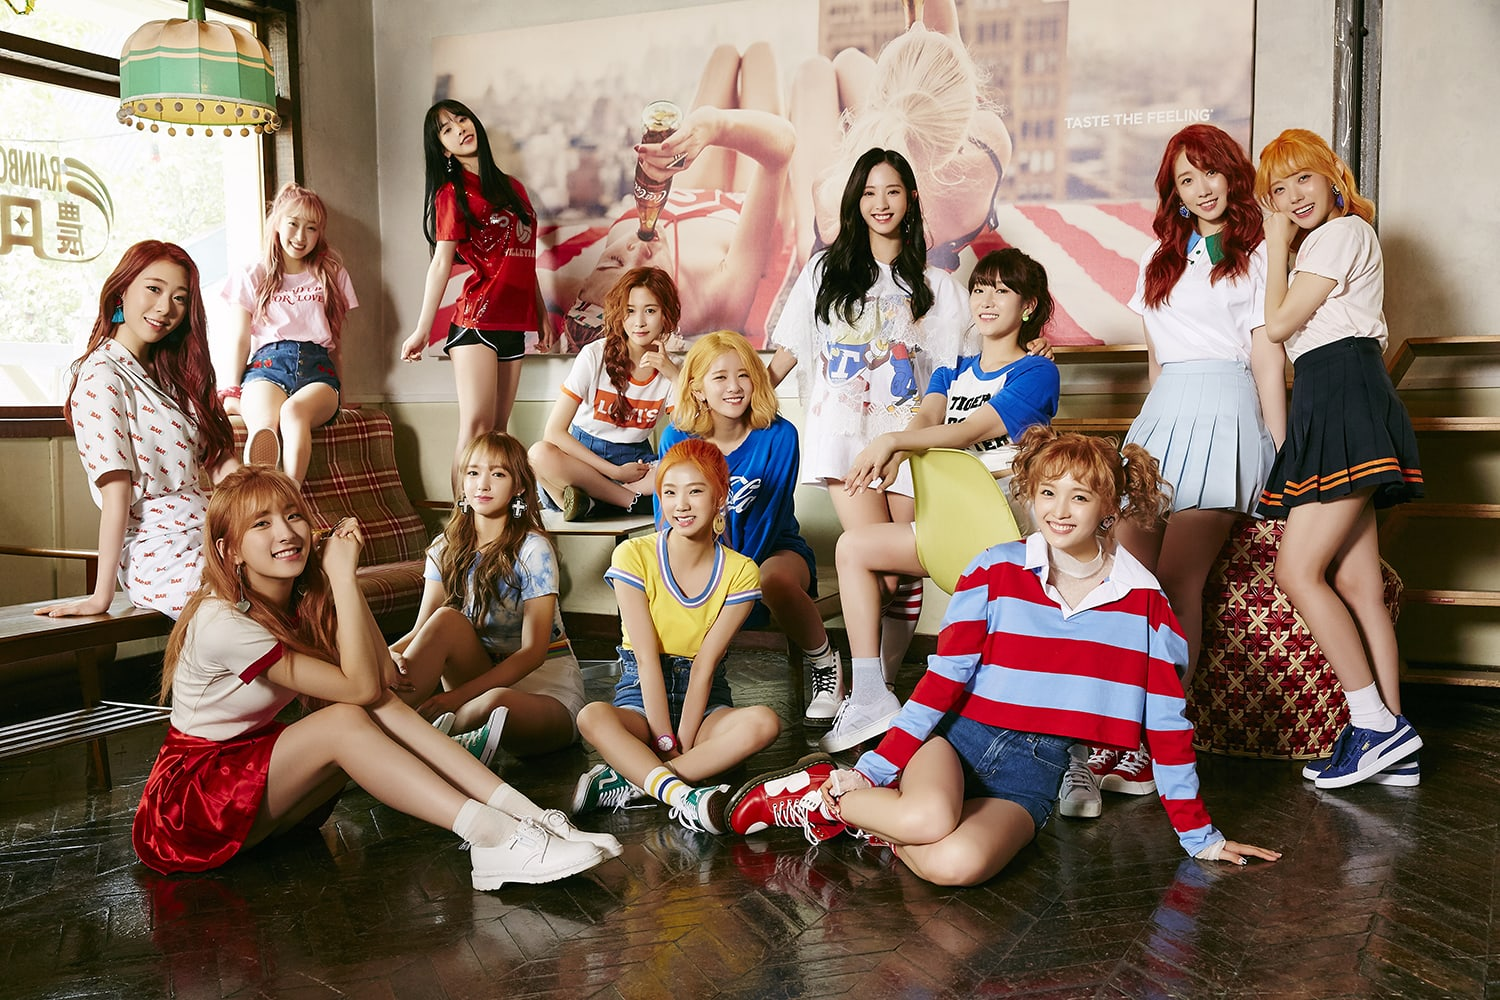 Cosmic Girls Announces Official Fan Club Colors And Unveils First Light Stick